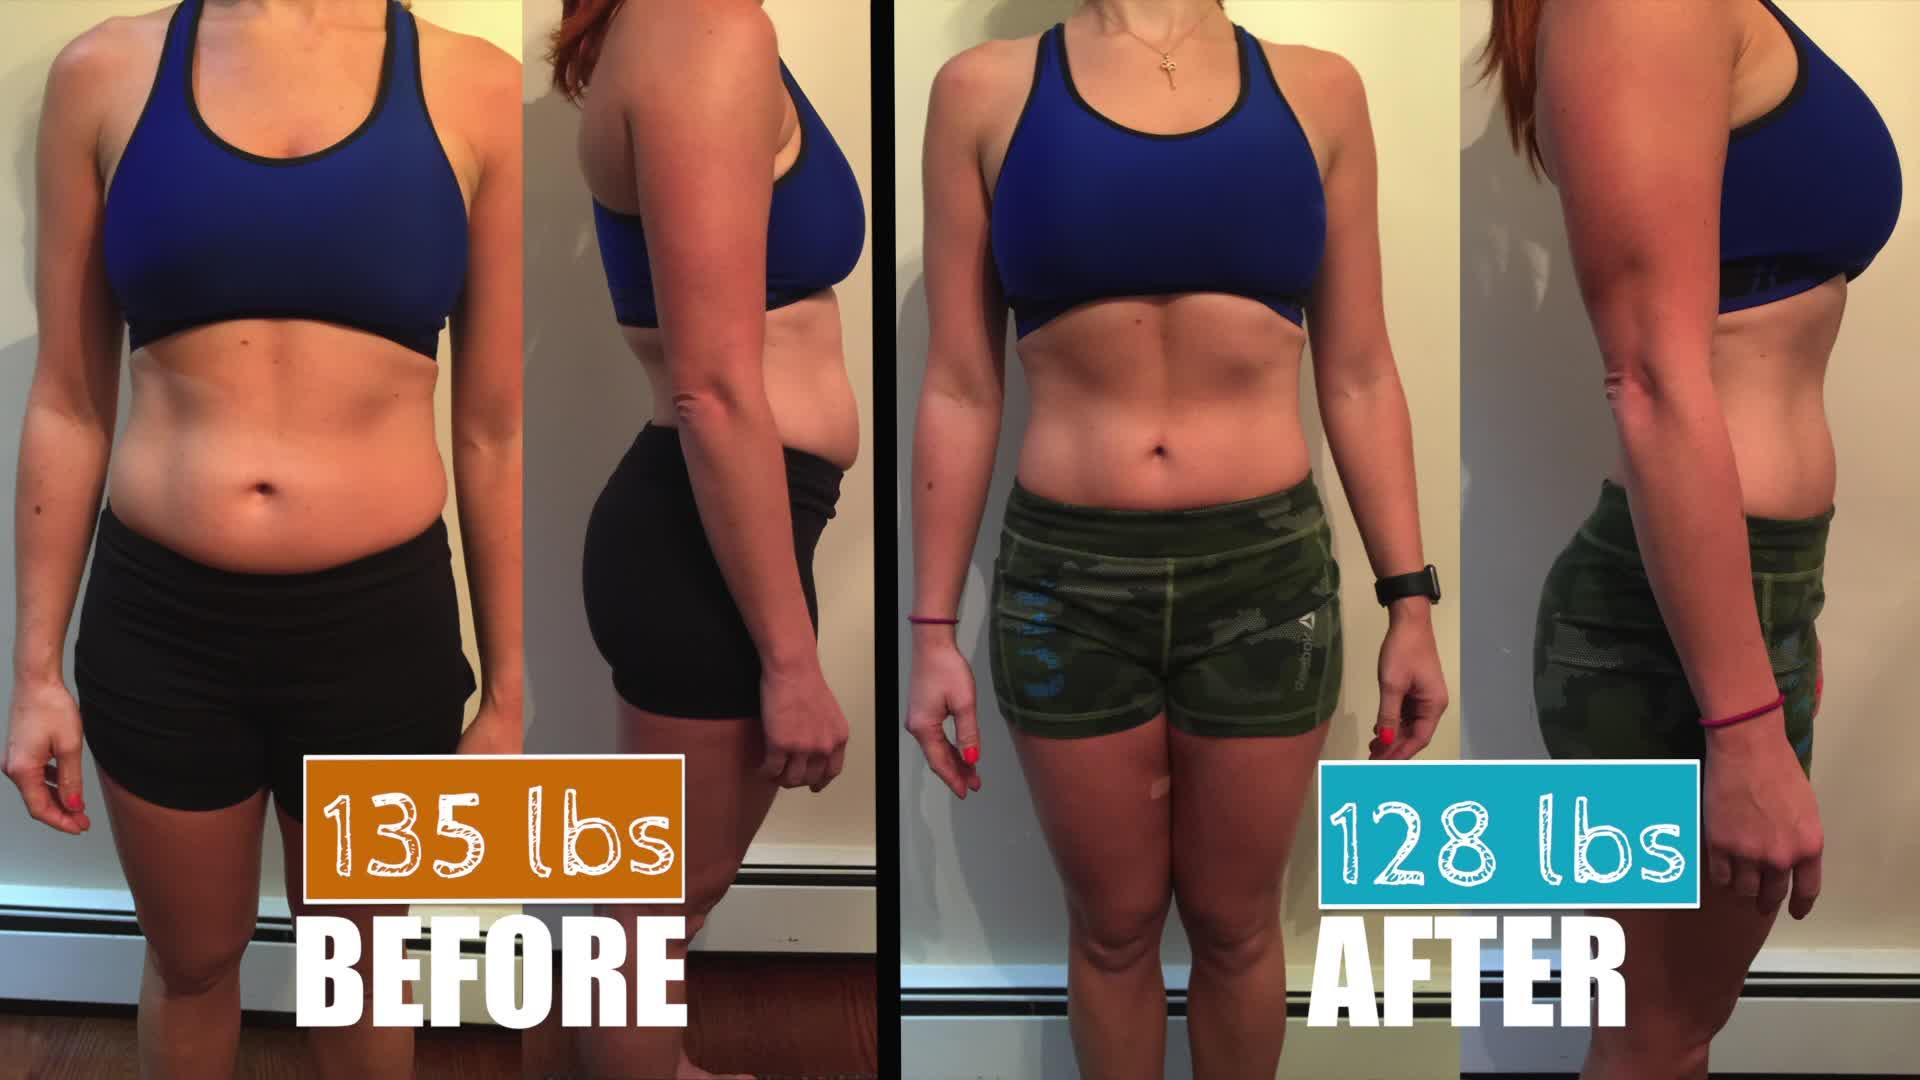 Day Military Diet Challenge: Before and After Results [Video]